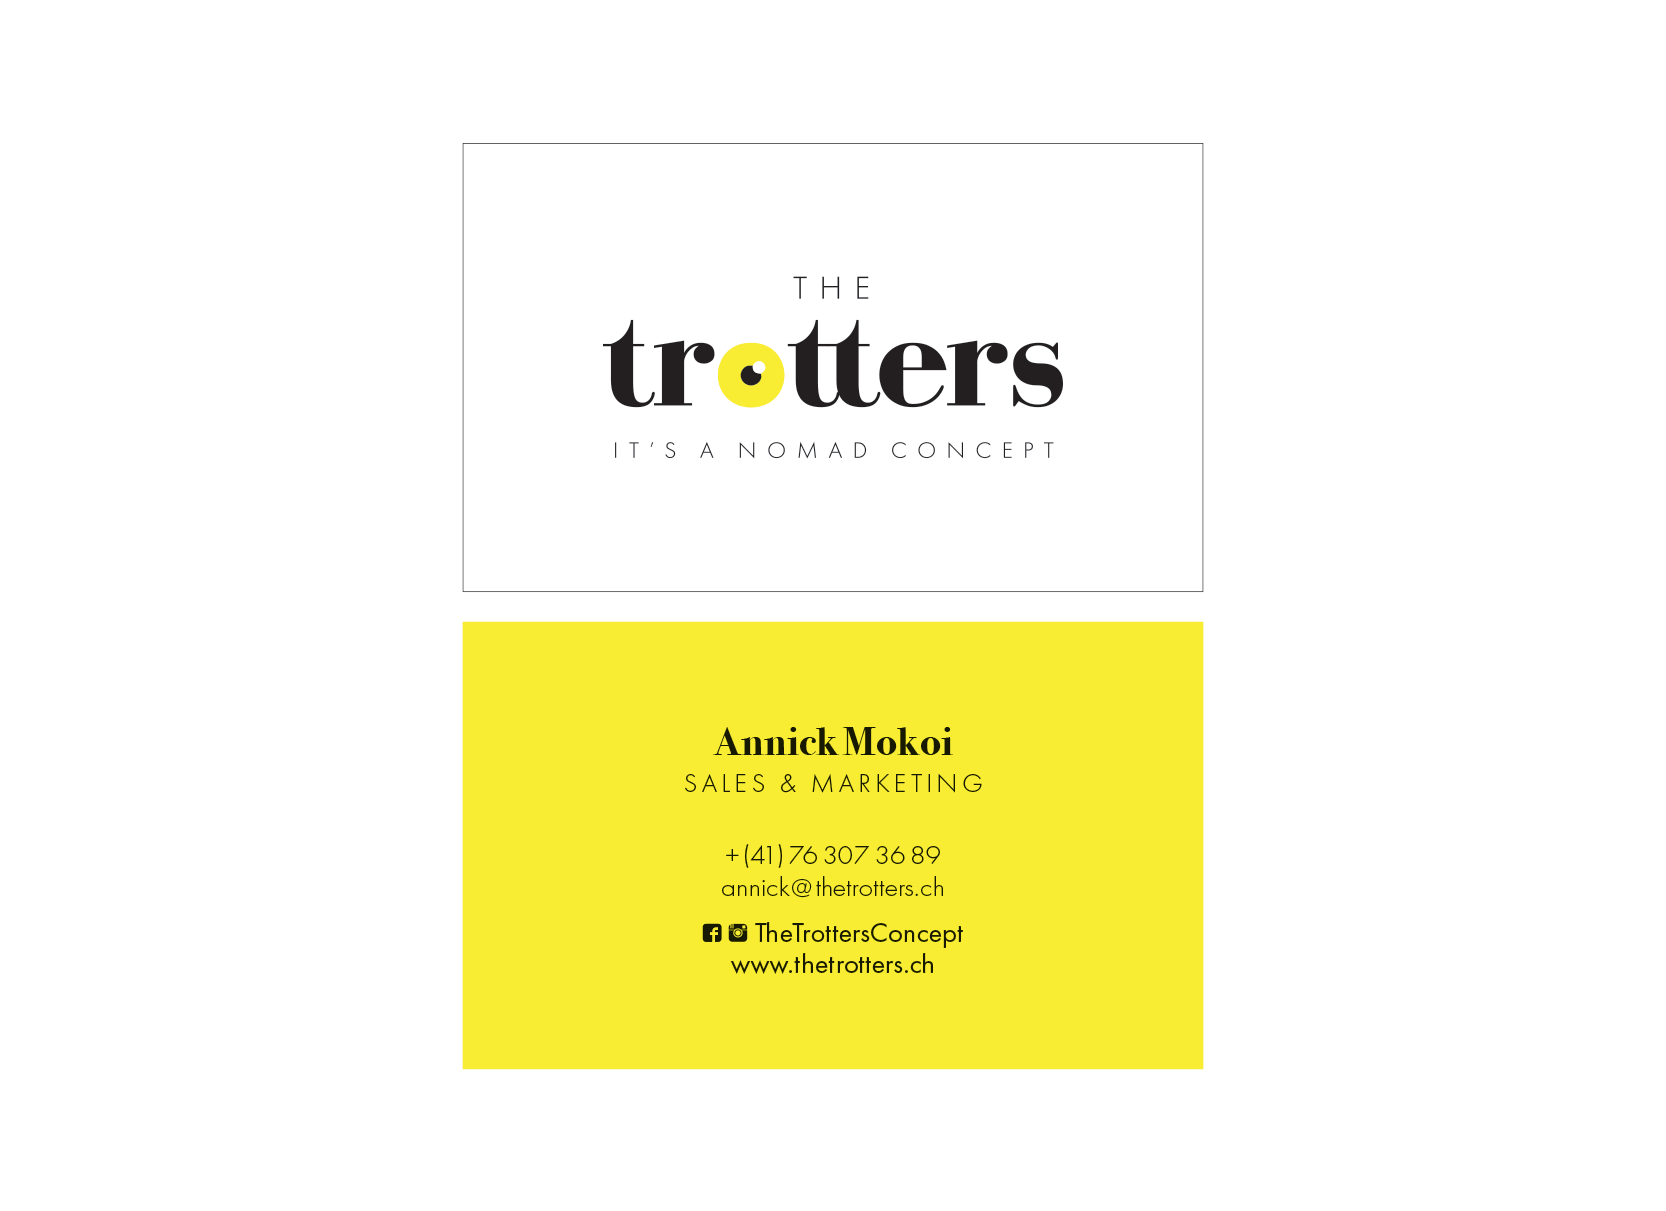 BS_Projet-TheTrotters4.png